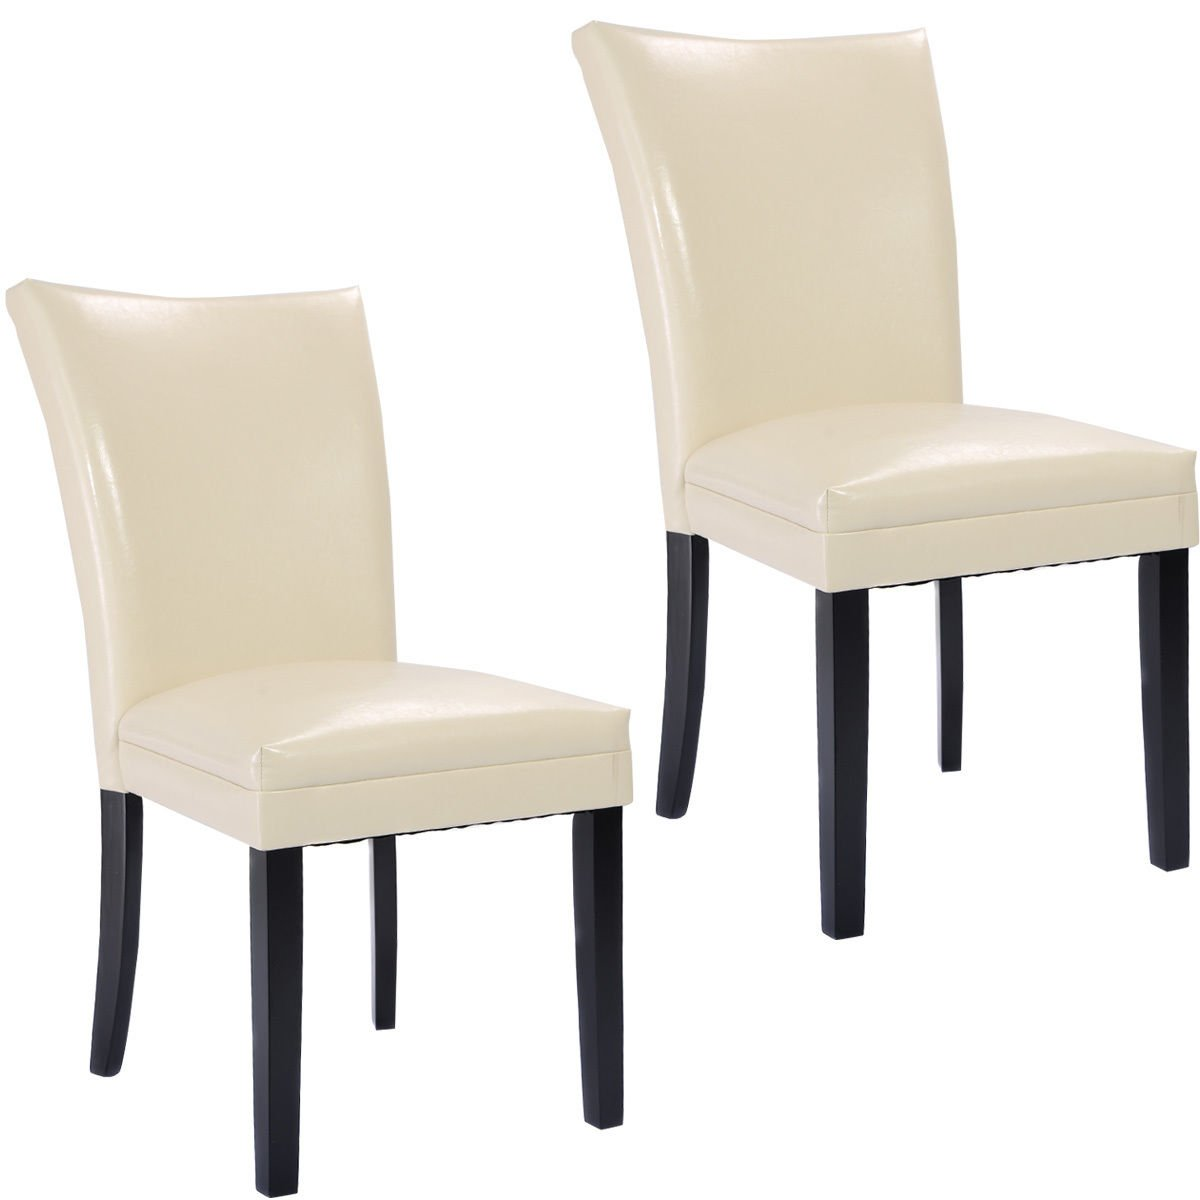 Giantex Set of 2 Elegant Design PU Leather Accent Dining Chairs Modern Home Furniture (White)